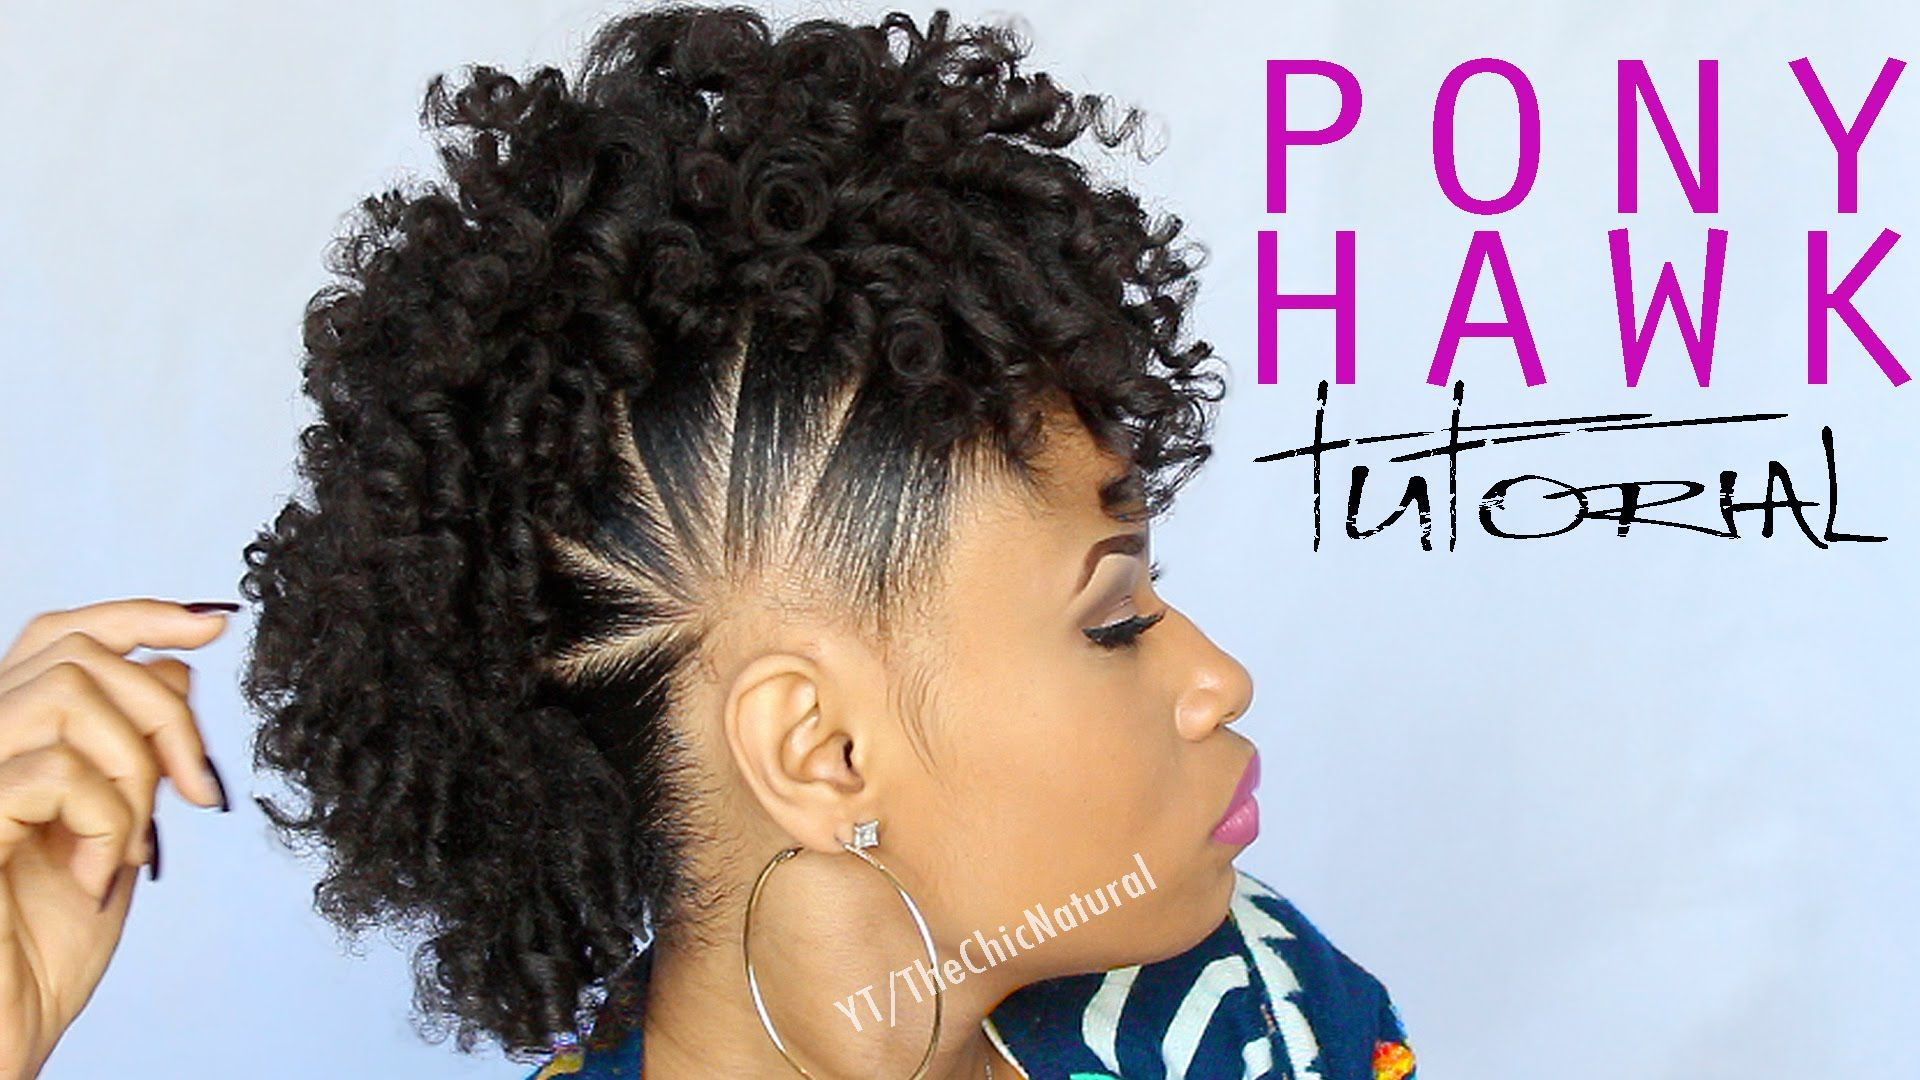 The Pony Hawk Natural Hairstyle Natural Hair Styles Hair Styles Natural Hair Tutorials